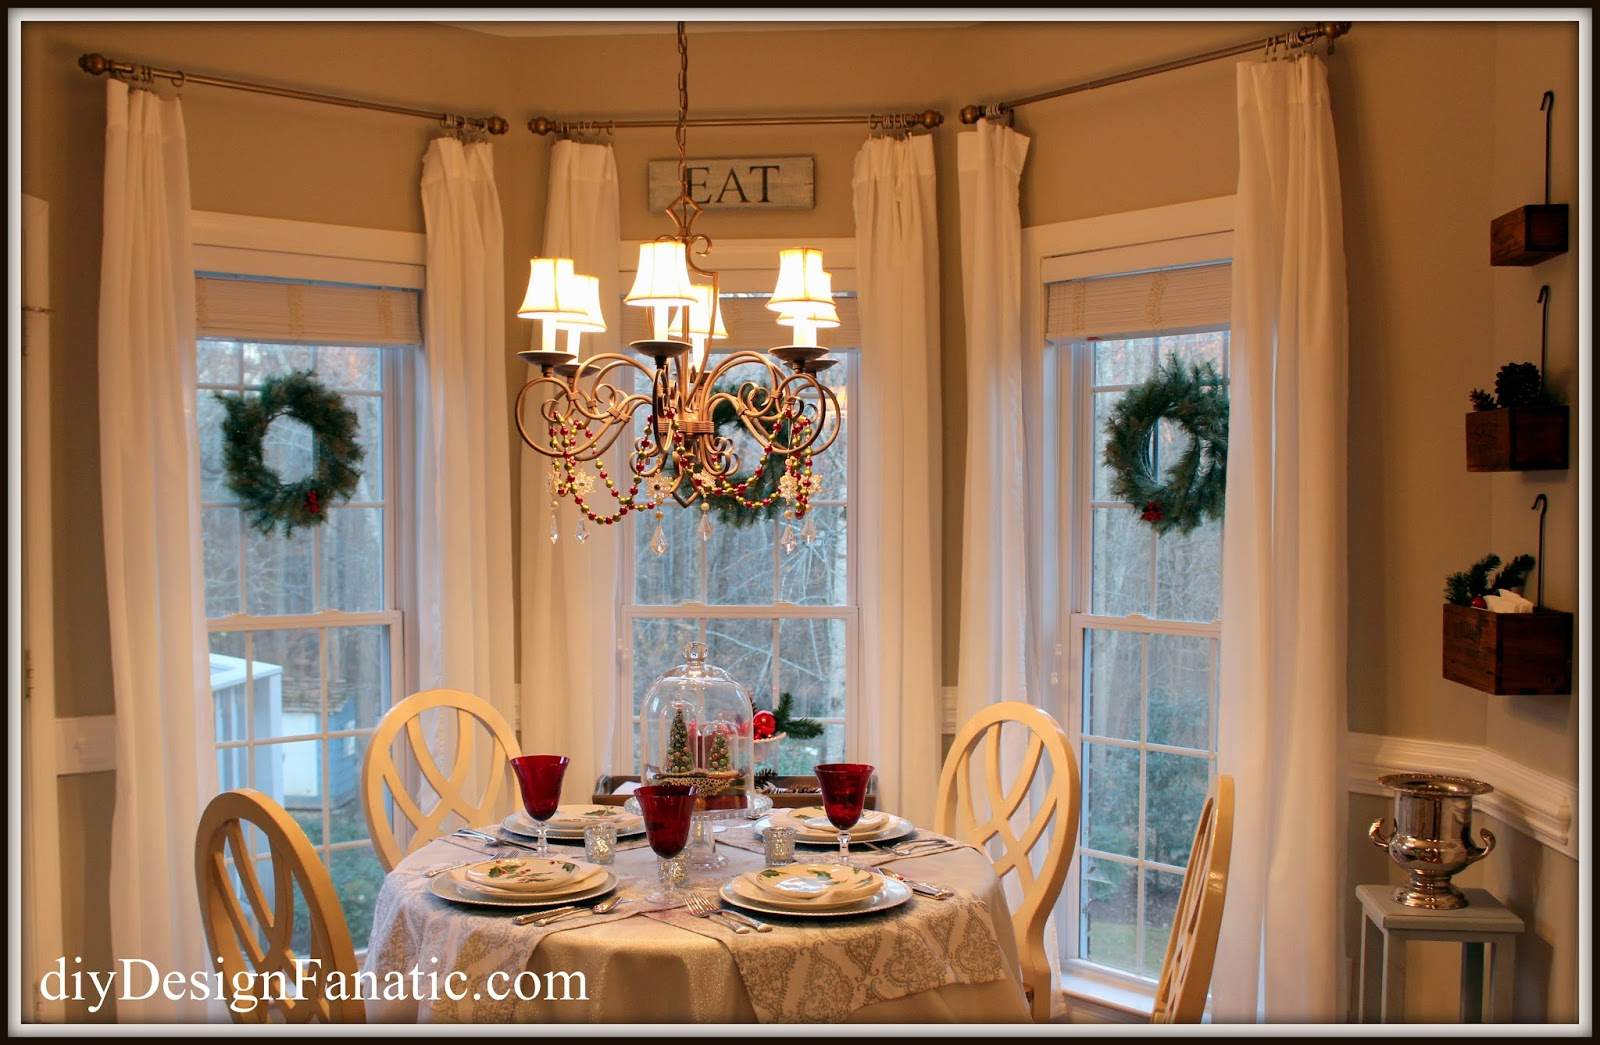 the wreaths were a closeout several years ago from home decoratorscom i use a command strip hook to hang them from the windows - Home Decoratorscom